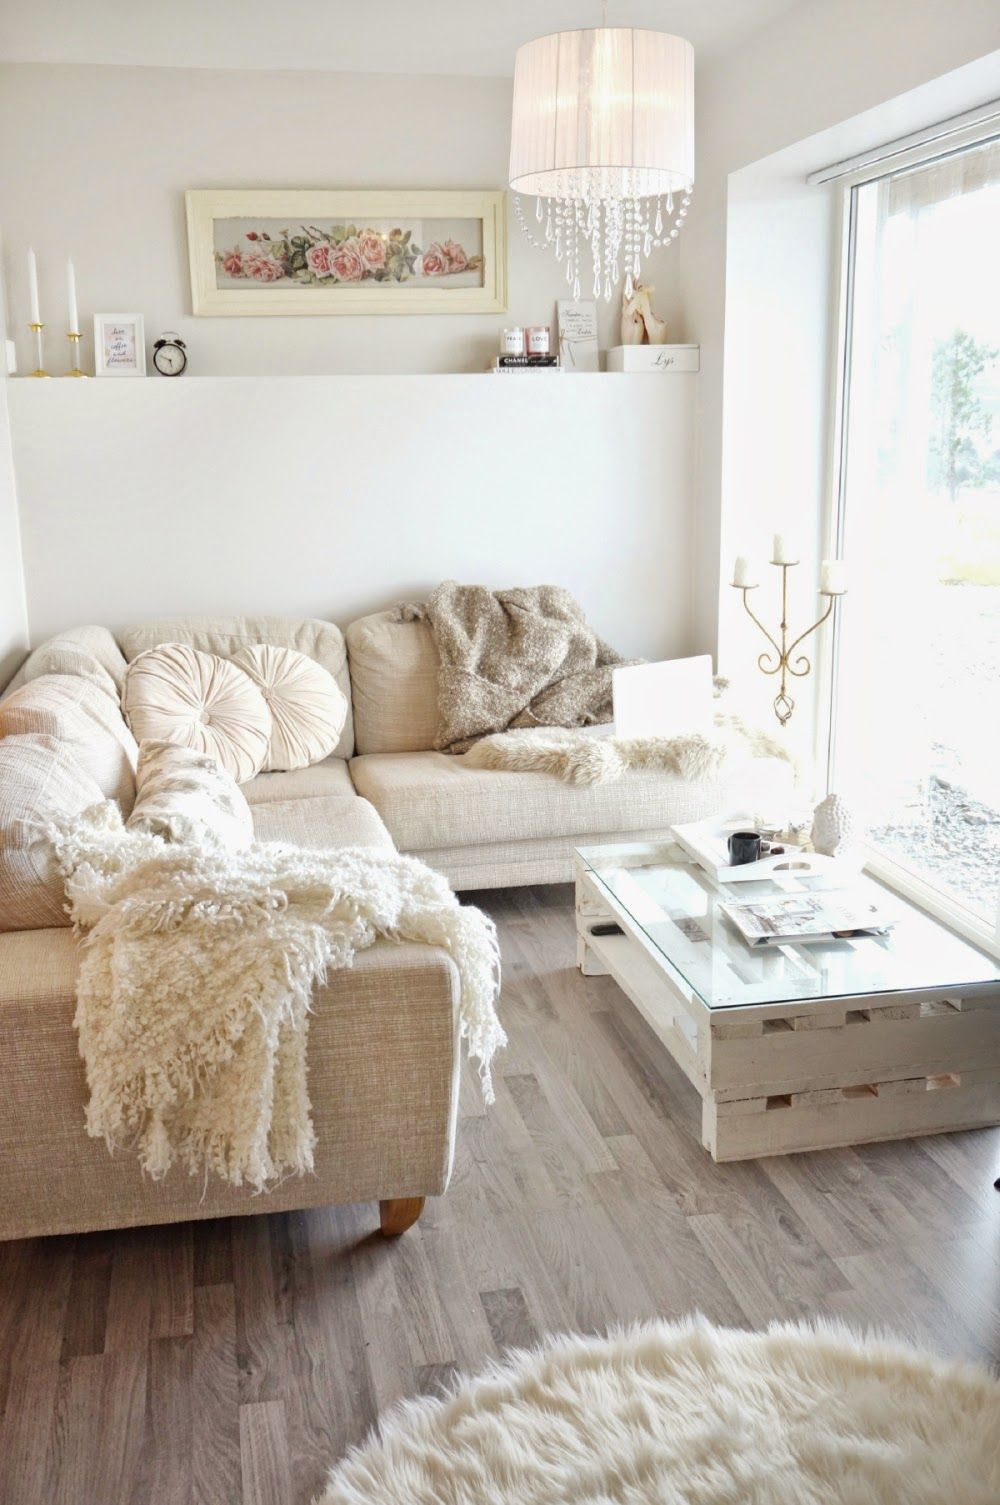 Corner Sofa Living Room Small SpacesLiving Room White WallsModern Small  Living RoomSmall Living Room SectionalCouches For Small SpacesLiving Room  Ideas ...